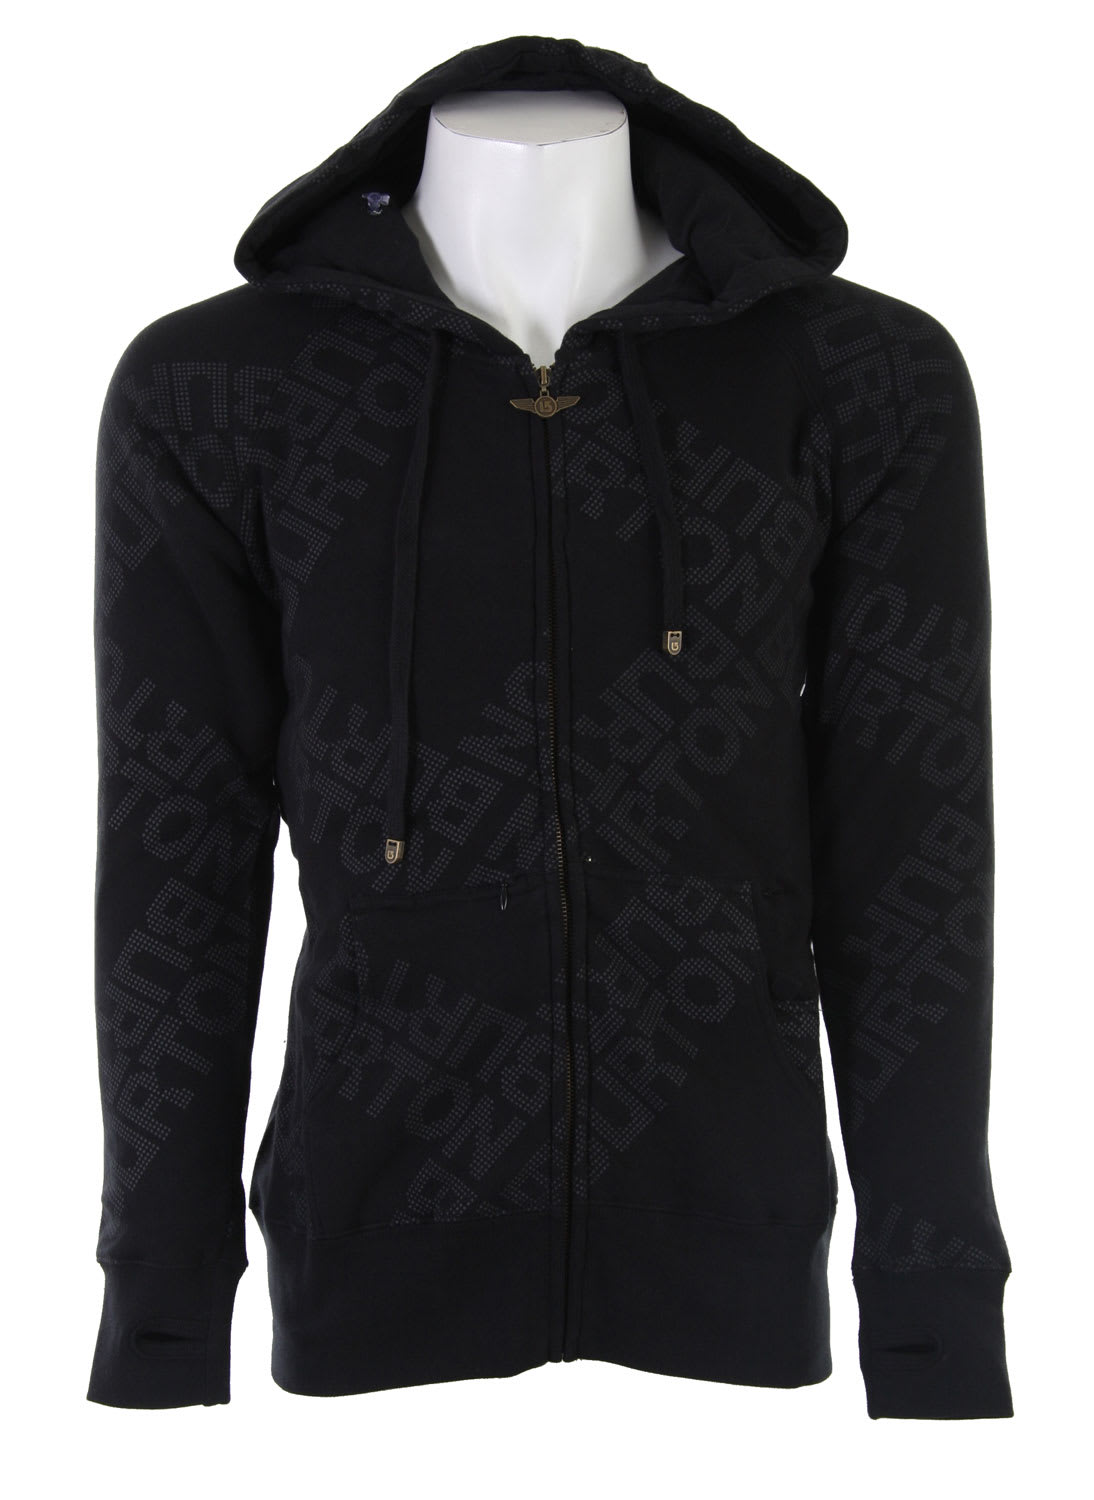 fid hoodie zipper heathers w sleeper hooded weare zoom burton heather shop